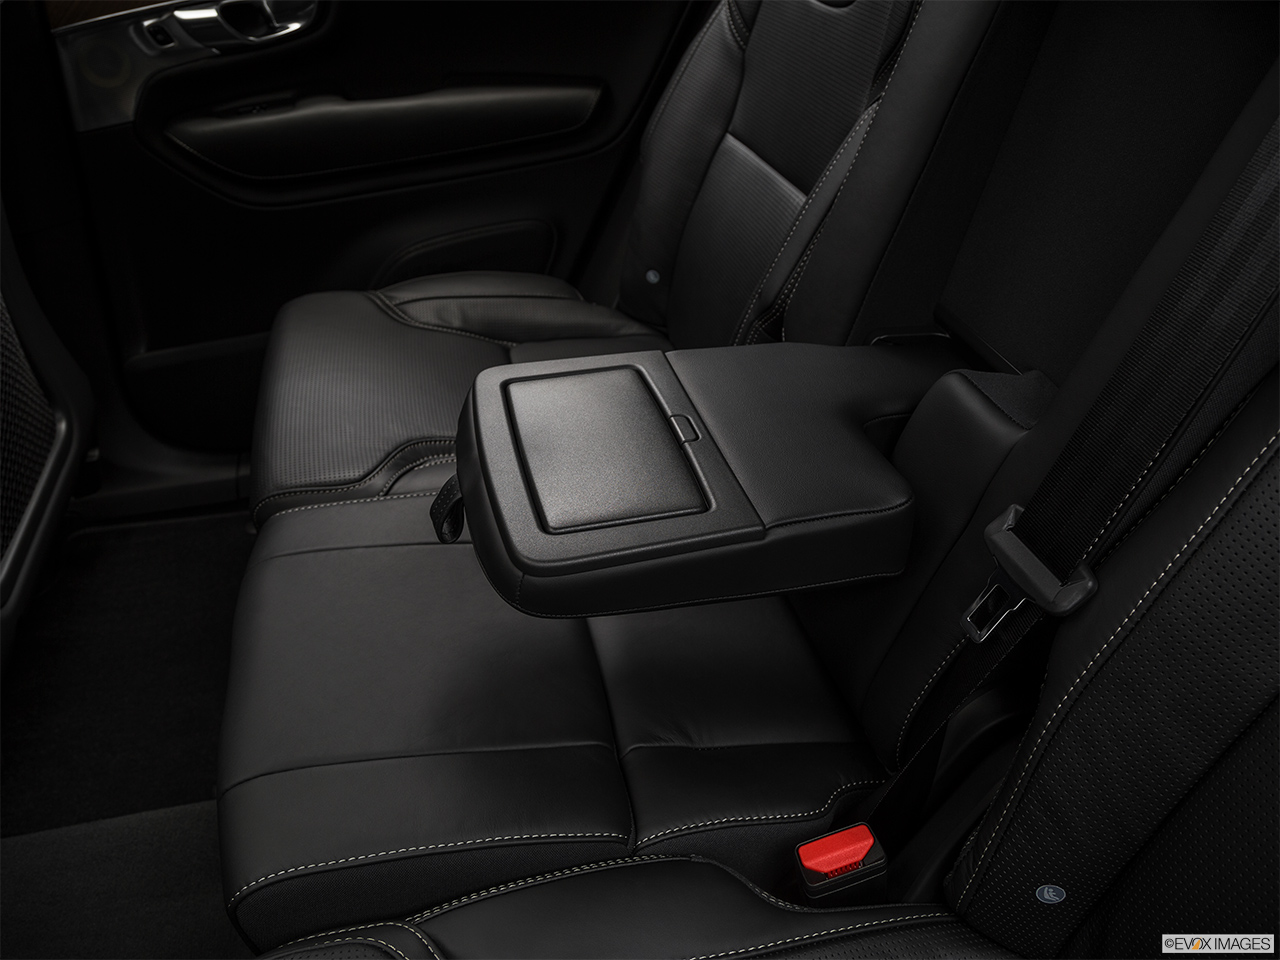 2019 Volvo XC90  T6 Inscription Rear center console with closed lid from driver's side looking down.